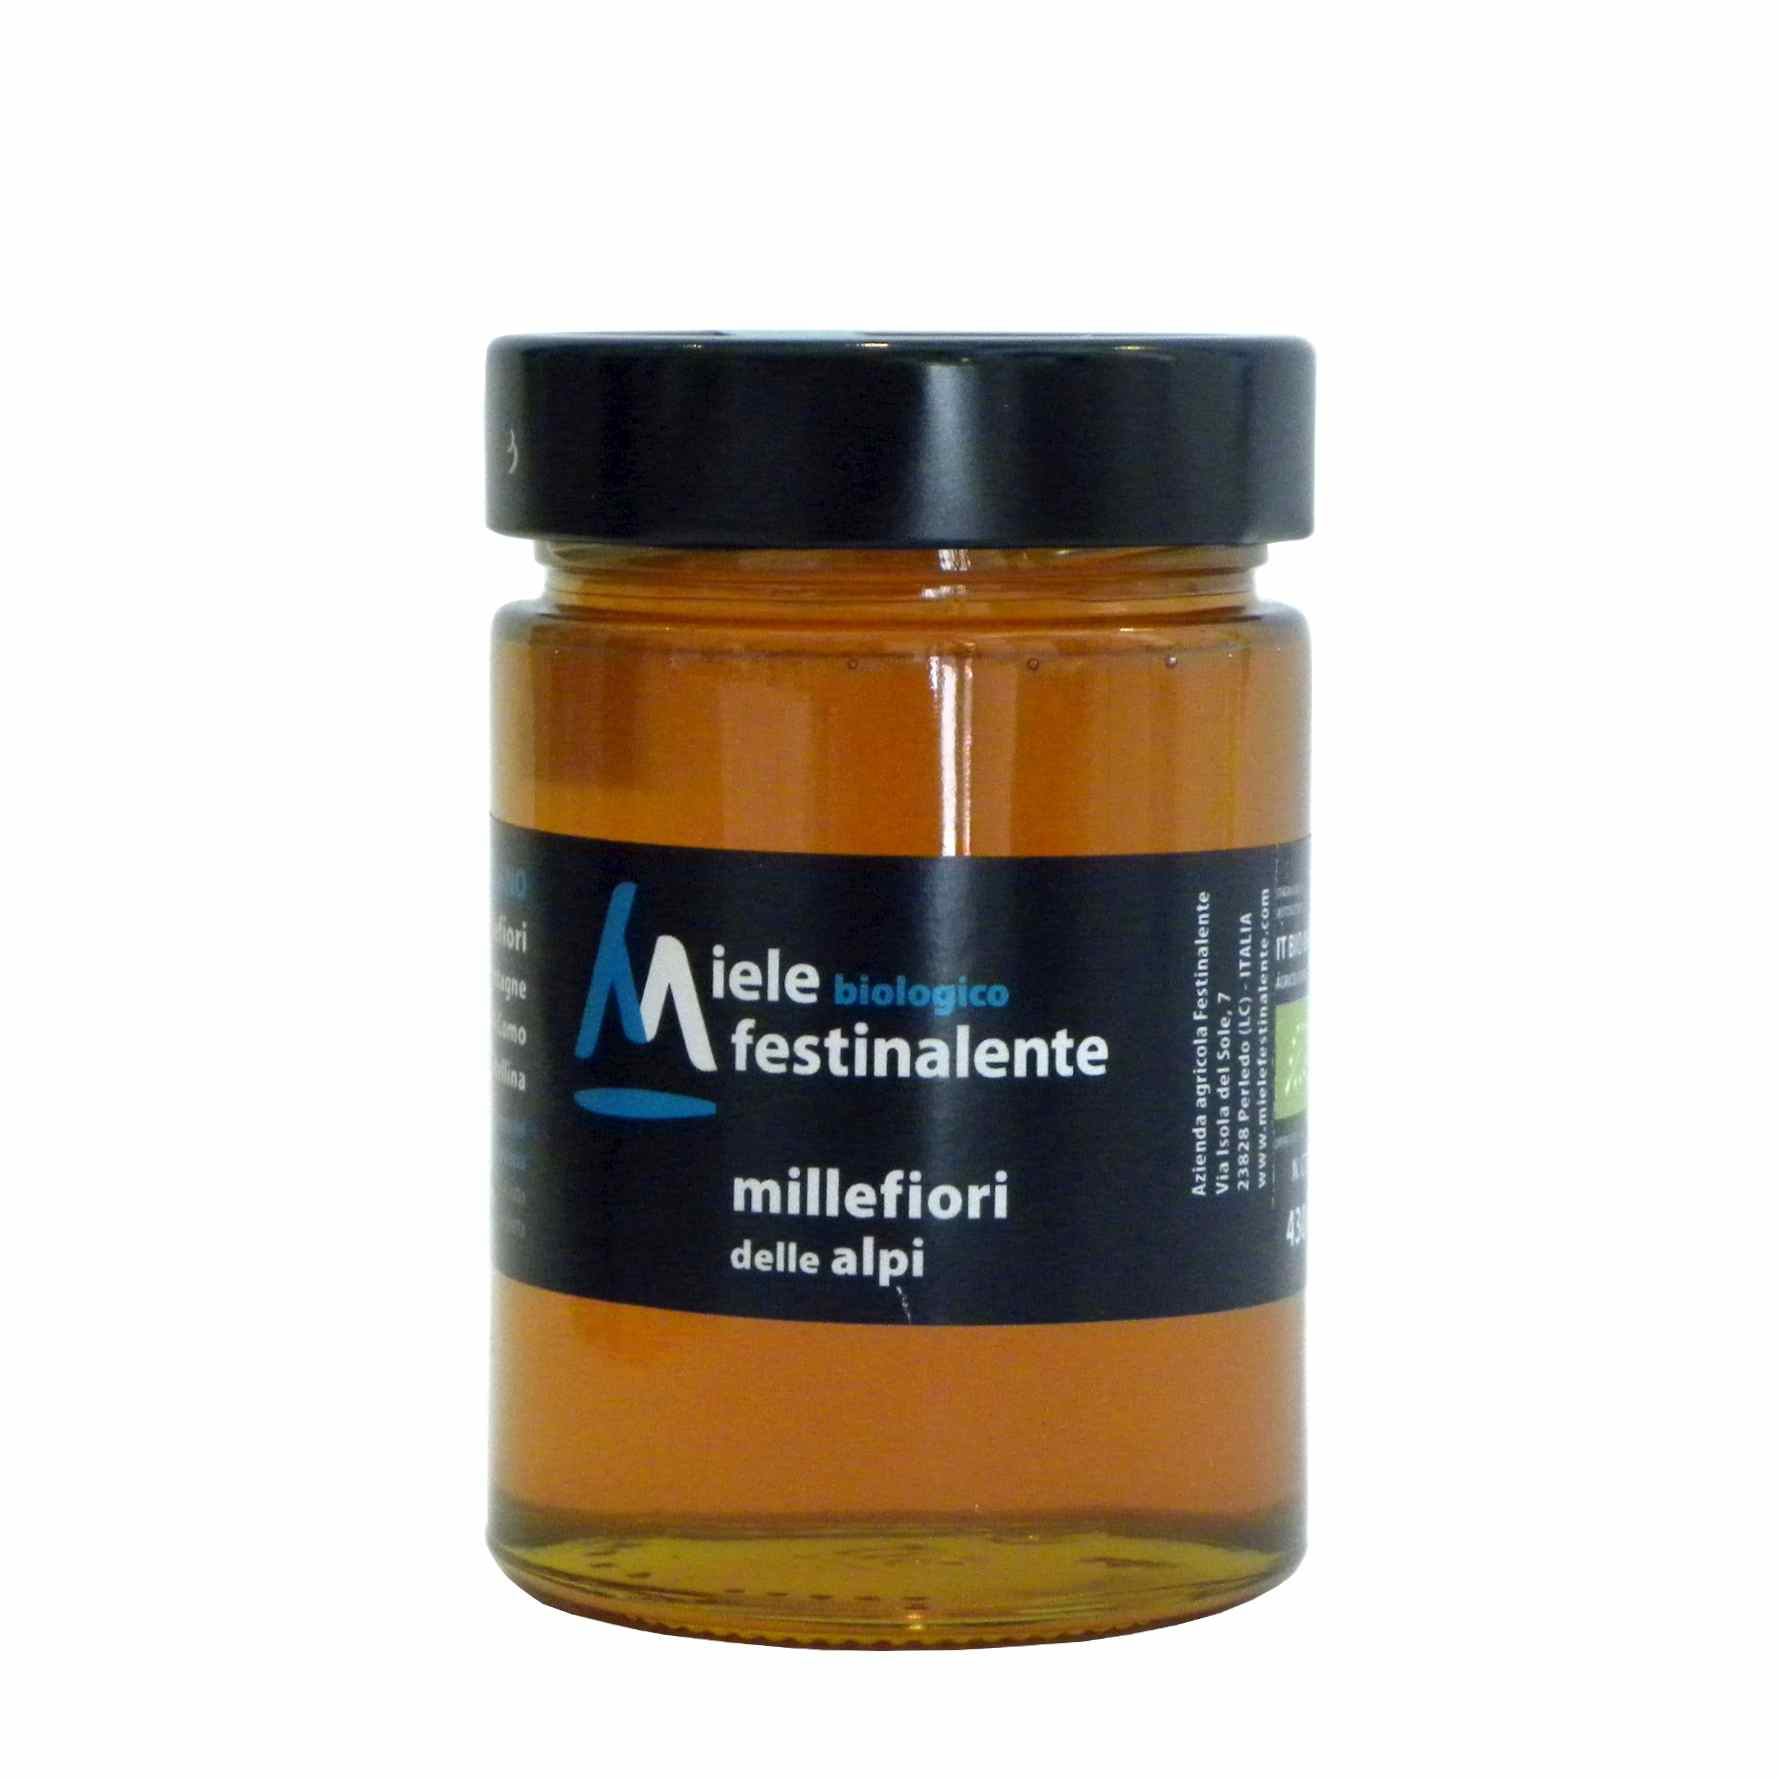 Festinalente miele bio millefiori alpi – Festinalente organic raw alps thousand flowers honey – Gustorotondo – Italian food boutique